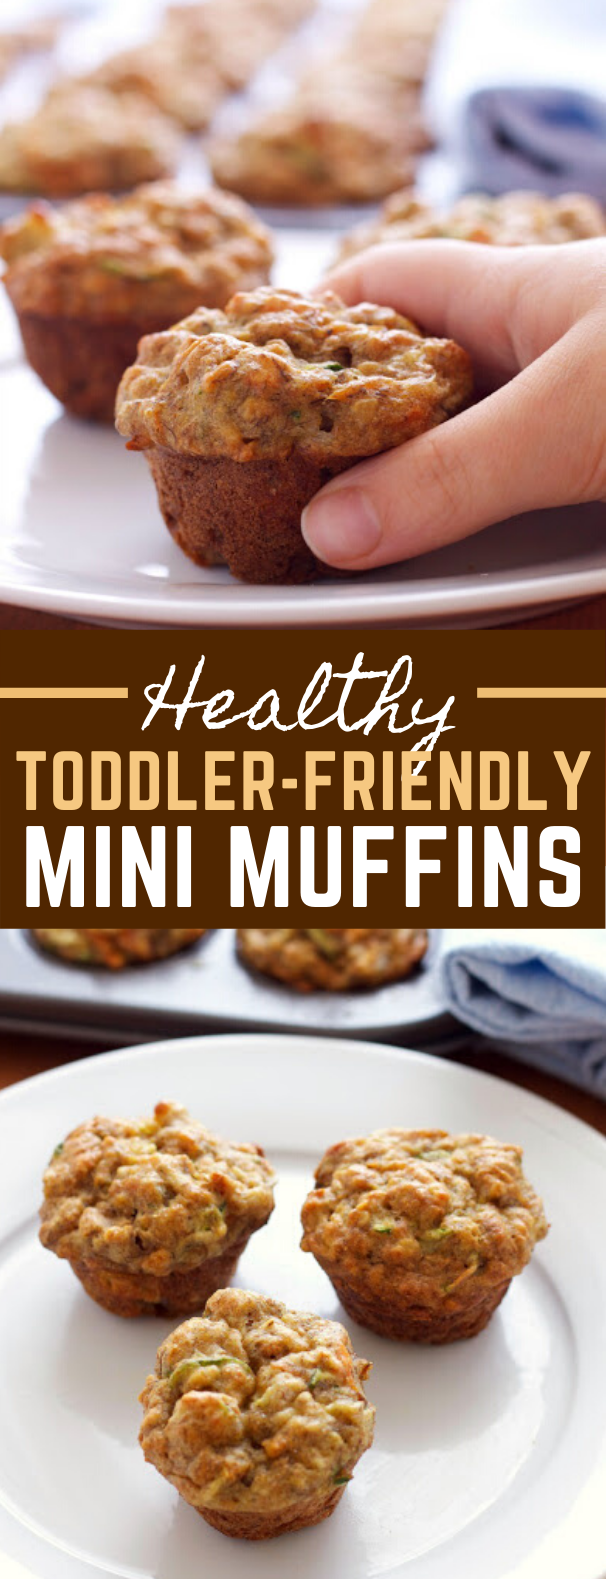 Healthy Toddler-Friendly Mini Muffins #vegetables #kidfriendly